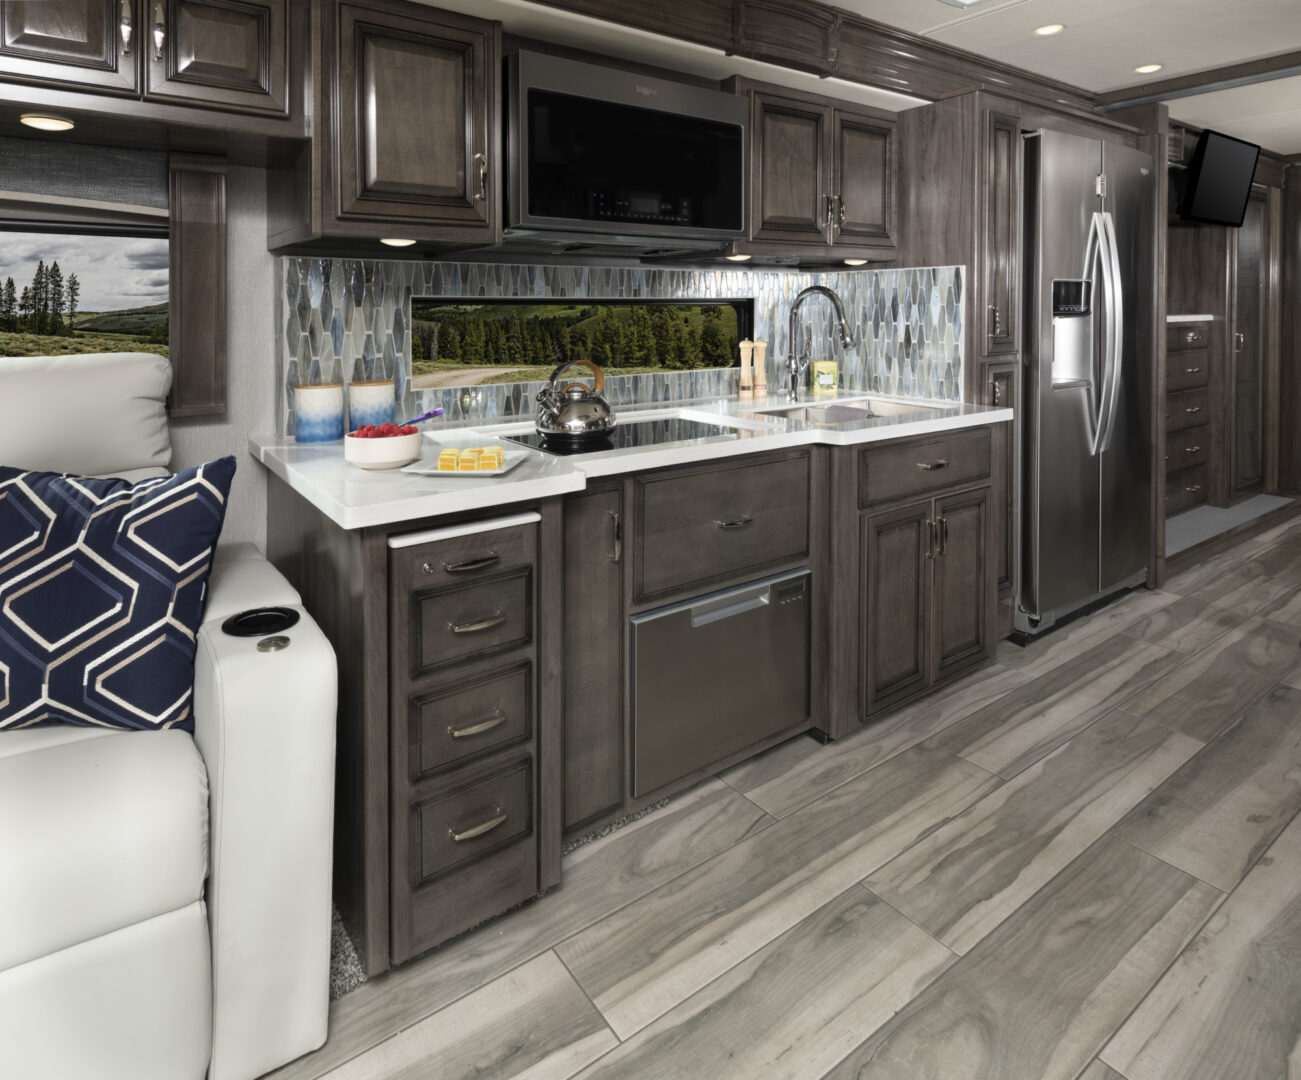 Endeavor 38W Waterford Decor with Whispering Wind Cabinetry